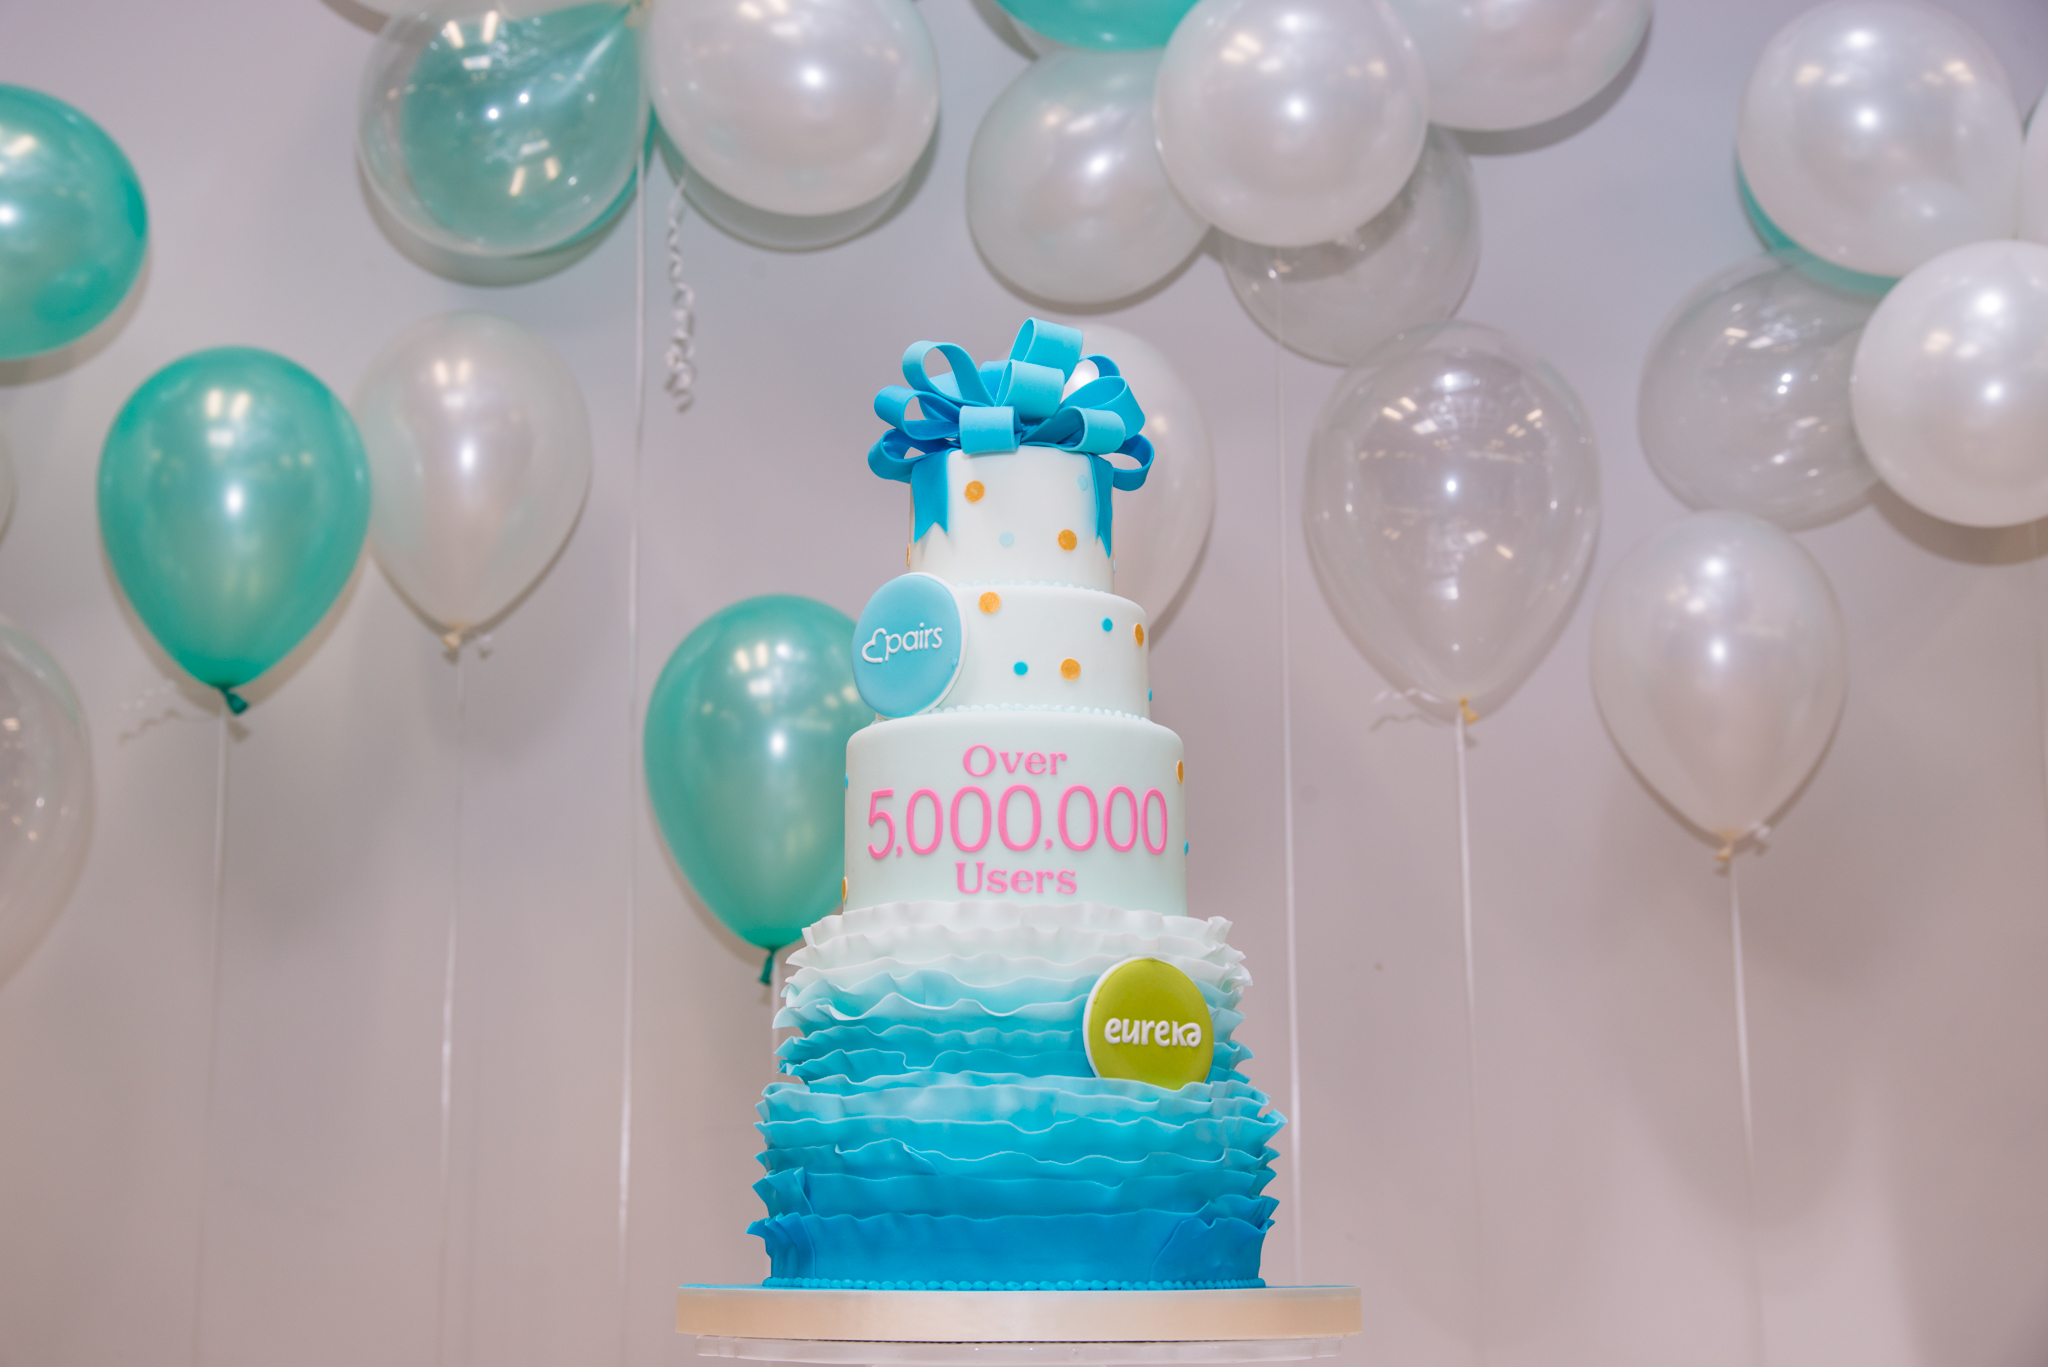 CAKEBY Pairs 5million Users Cake